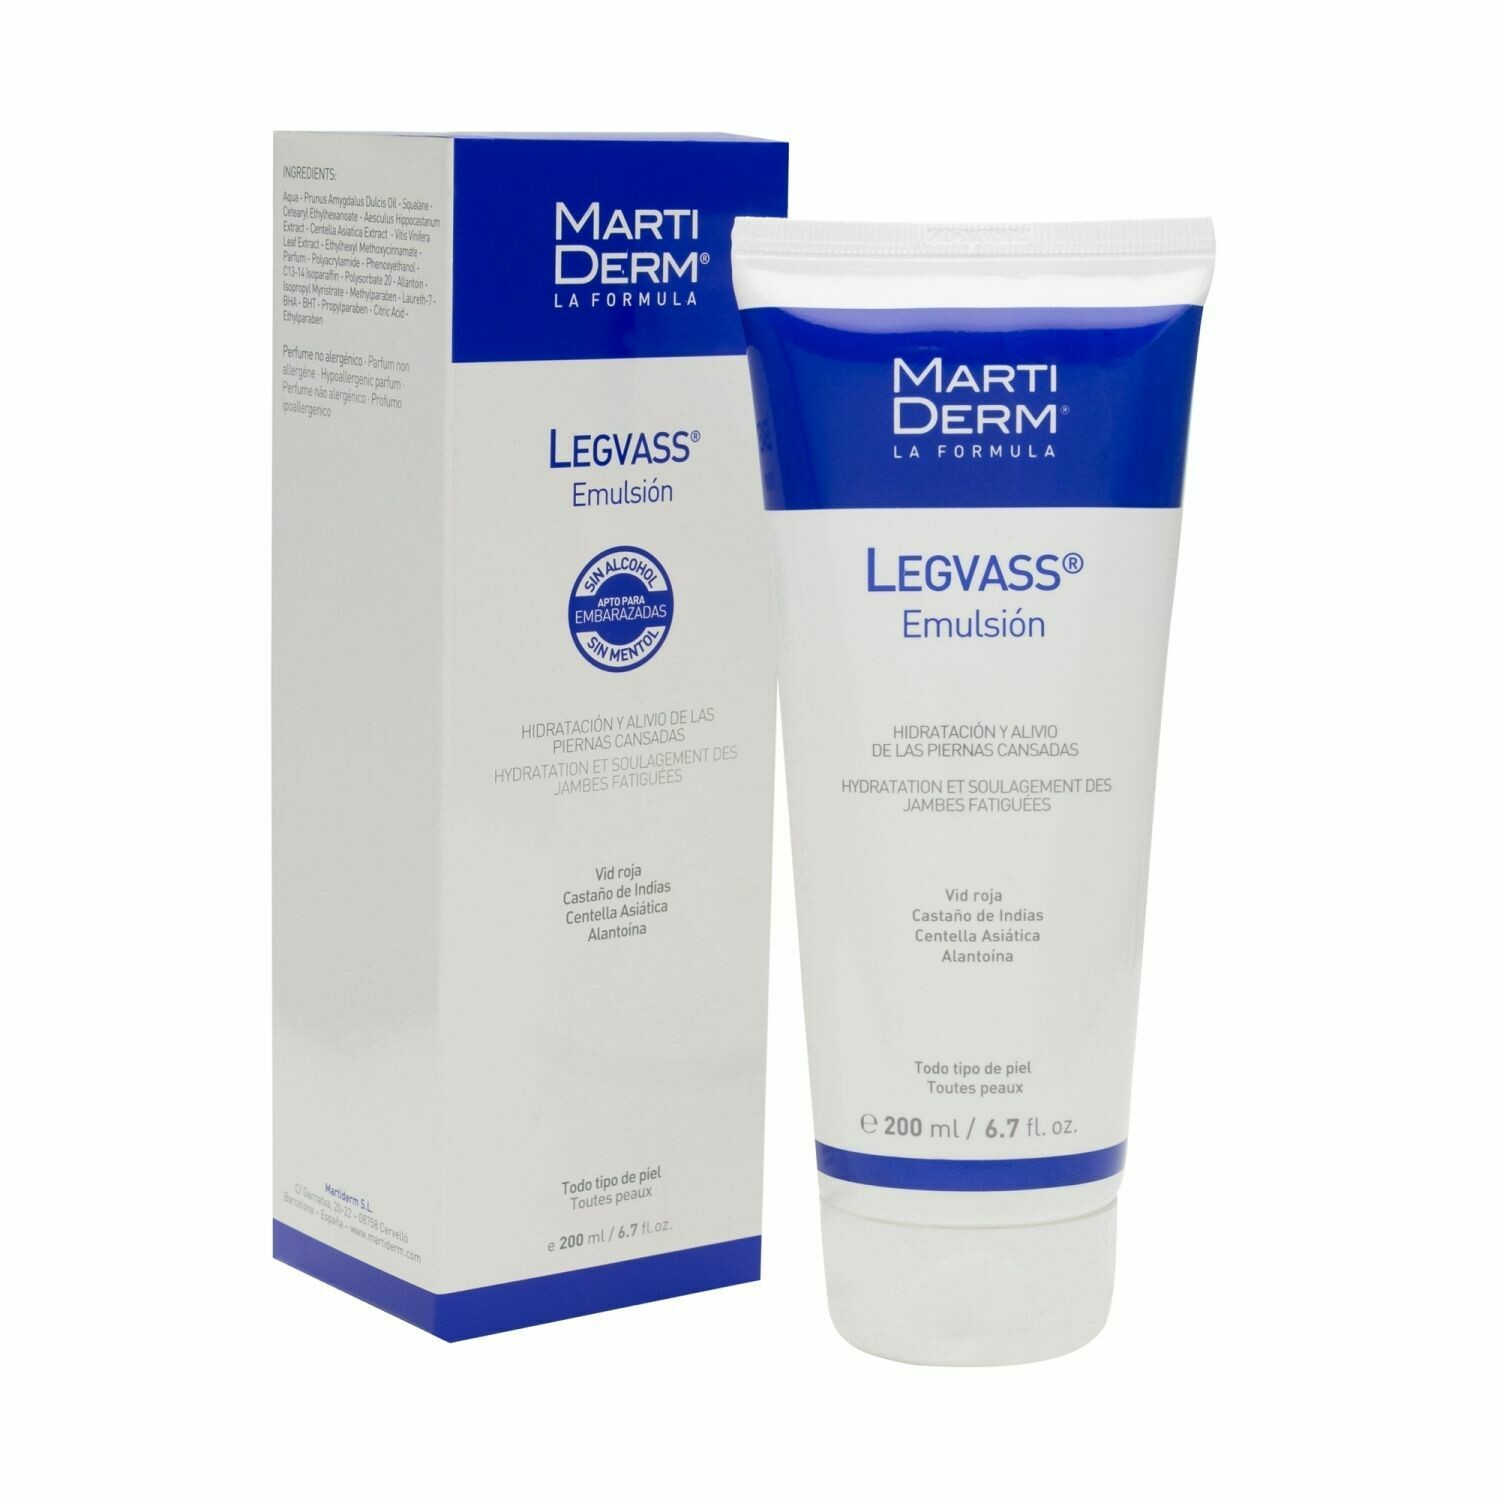 MARTIDERM LEGVASS EMULSION 200 ML